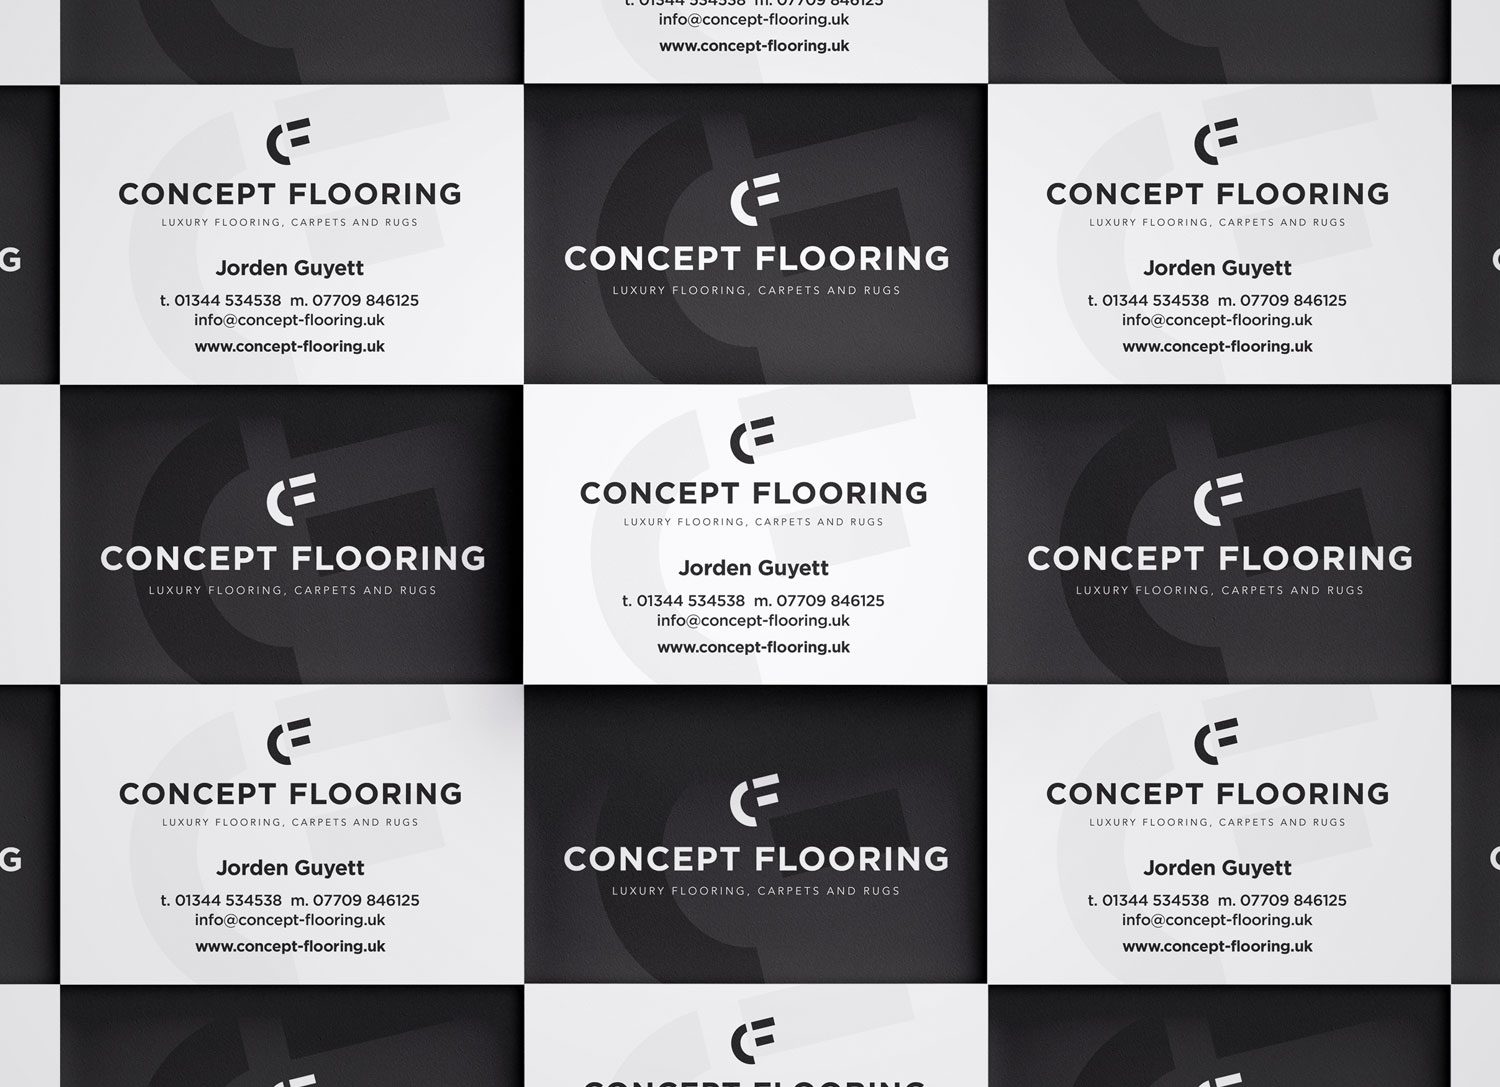 Concept Flooring Business Cards - by My Name is Dan